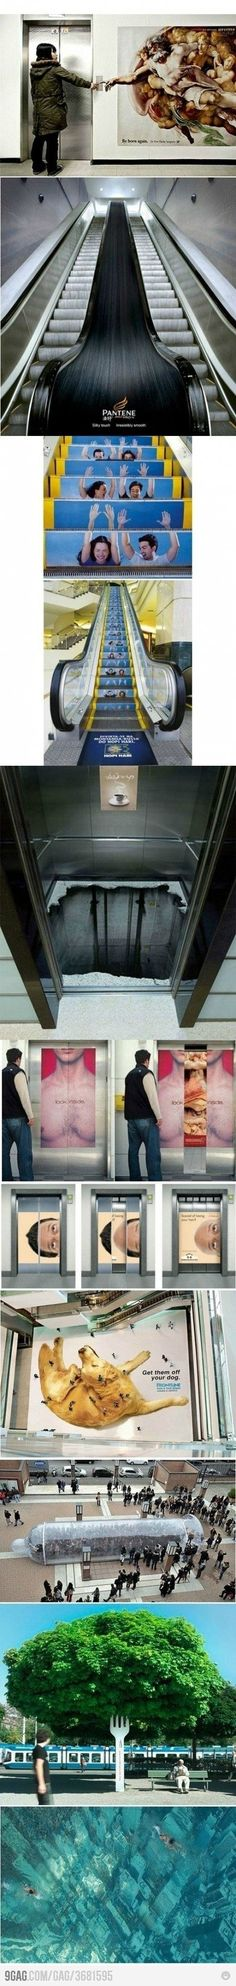 Clever ad campaigns.